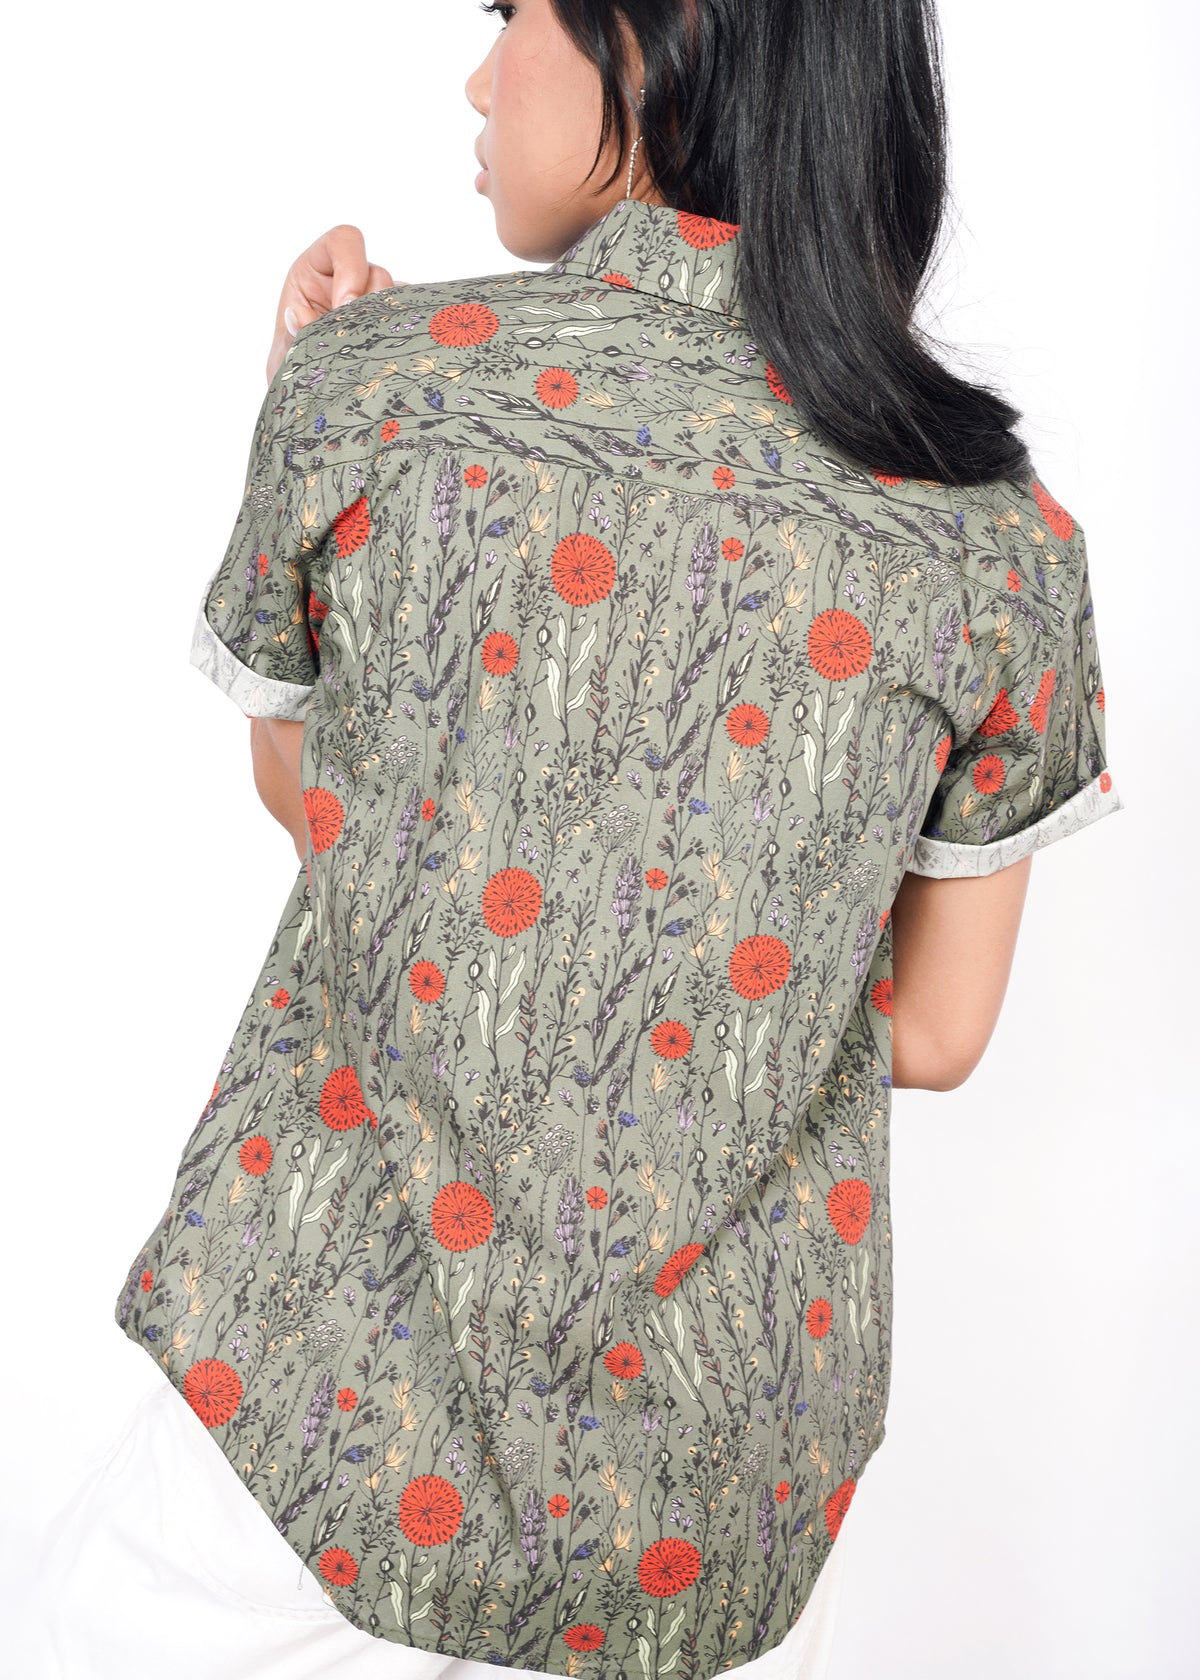 Backside of model wearing botanical all over printed short sleeved button up shirt in size XS, with the sleeves cuffed, untucked, with a curved hem